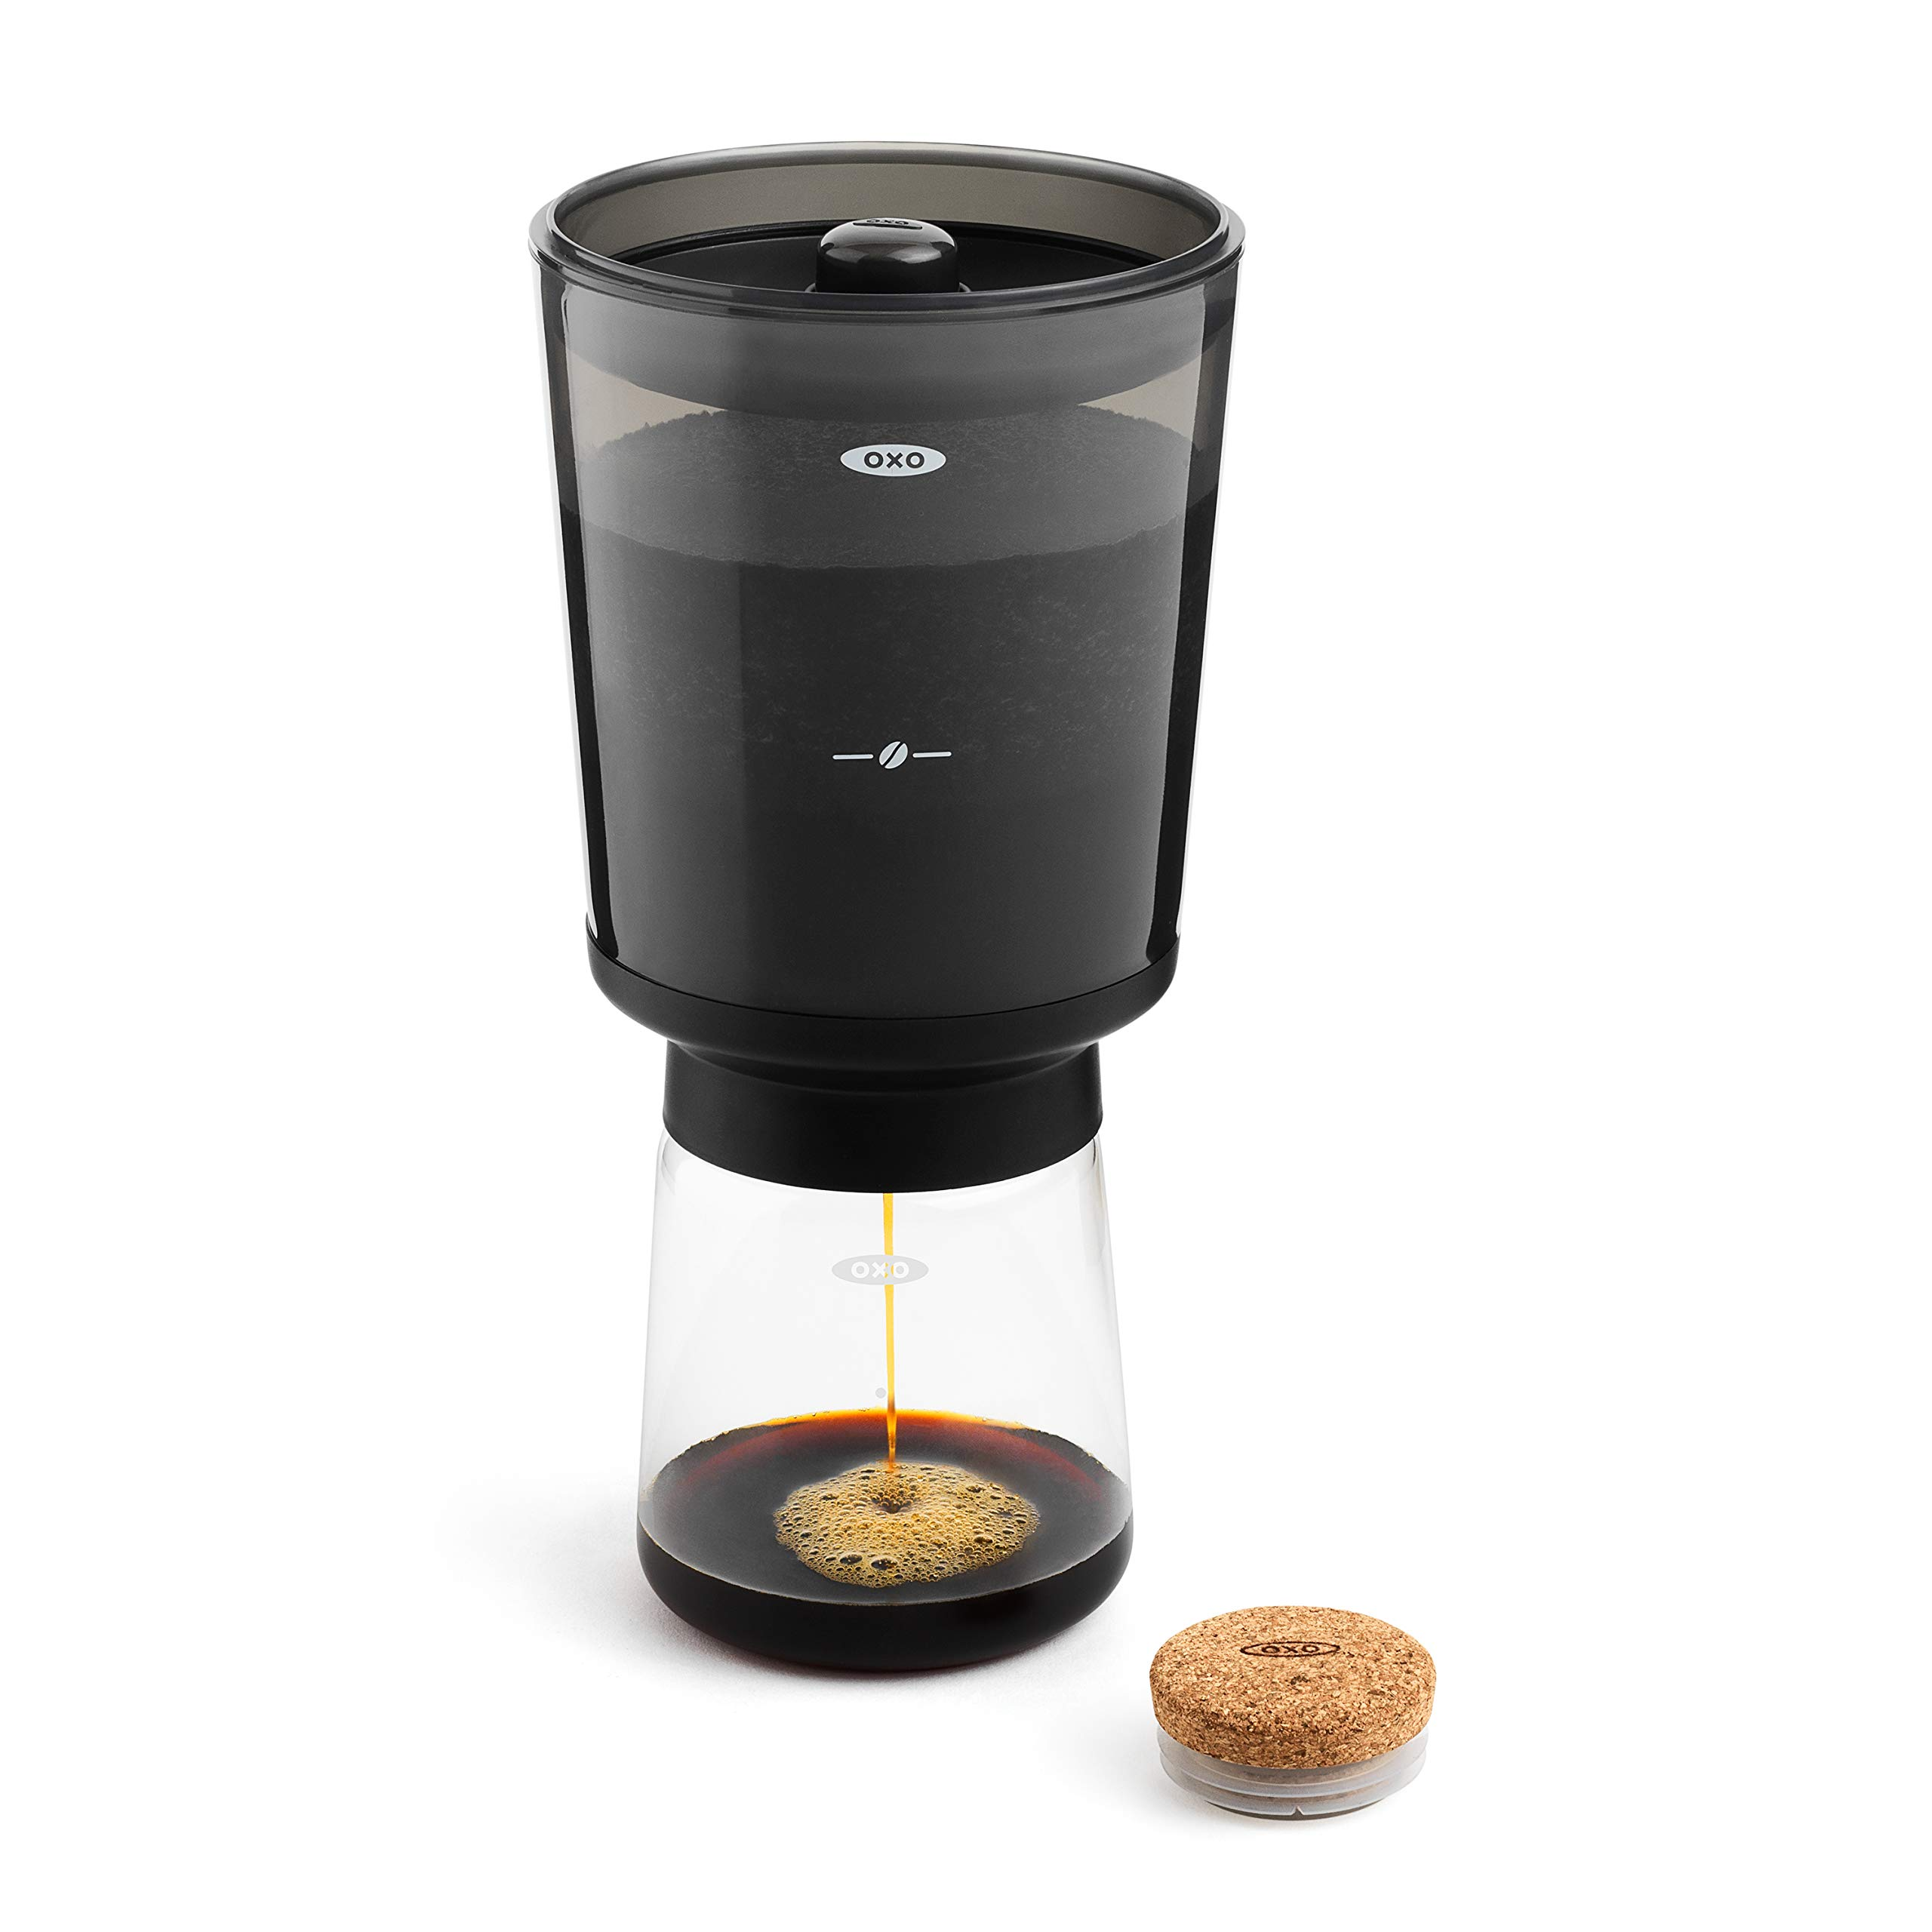 OXO BREW coffee maker